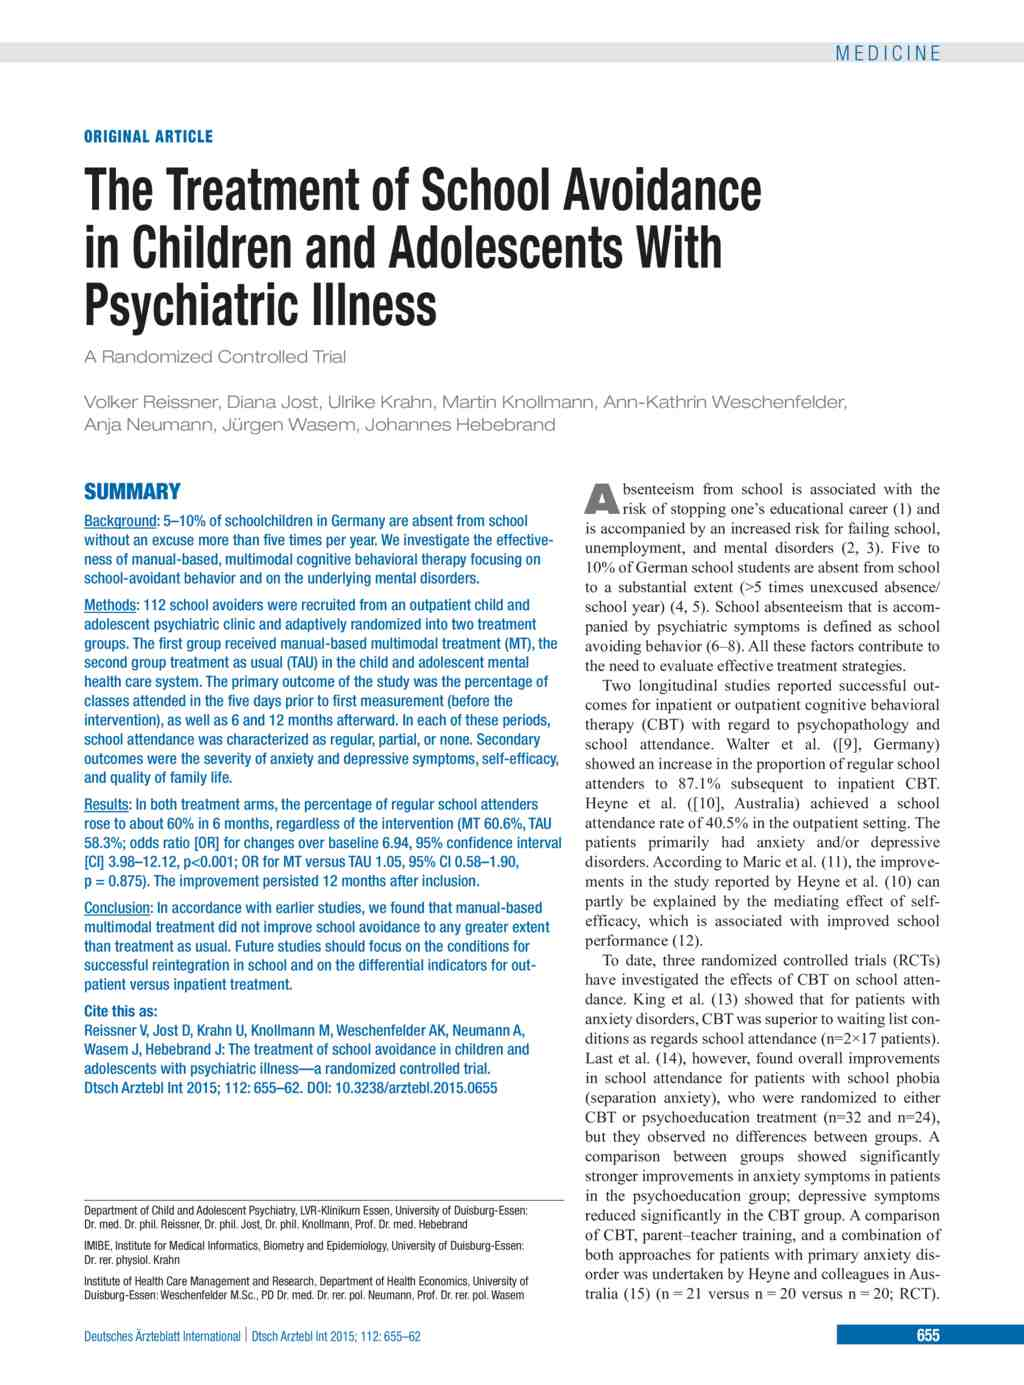 The Treatment of School Avoidance in Children and